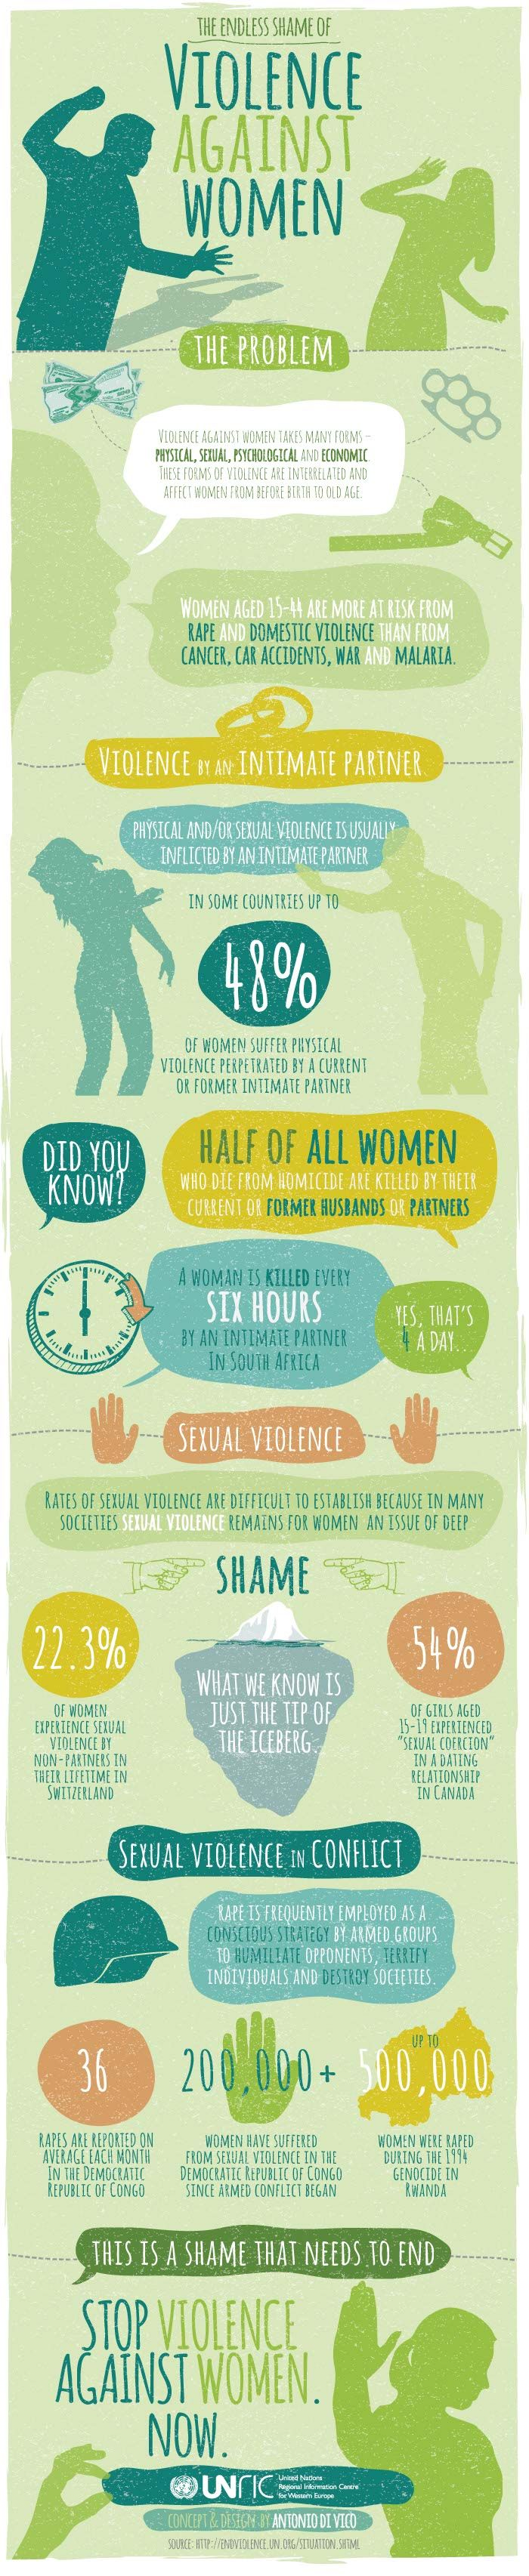 Violence Against Women Statistics (#christineemoya - I am one of those statistics www.abuseisnotfunny.com)